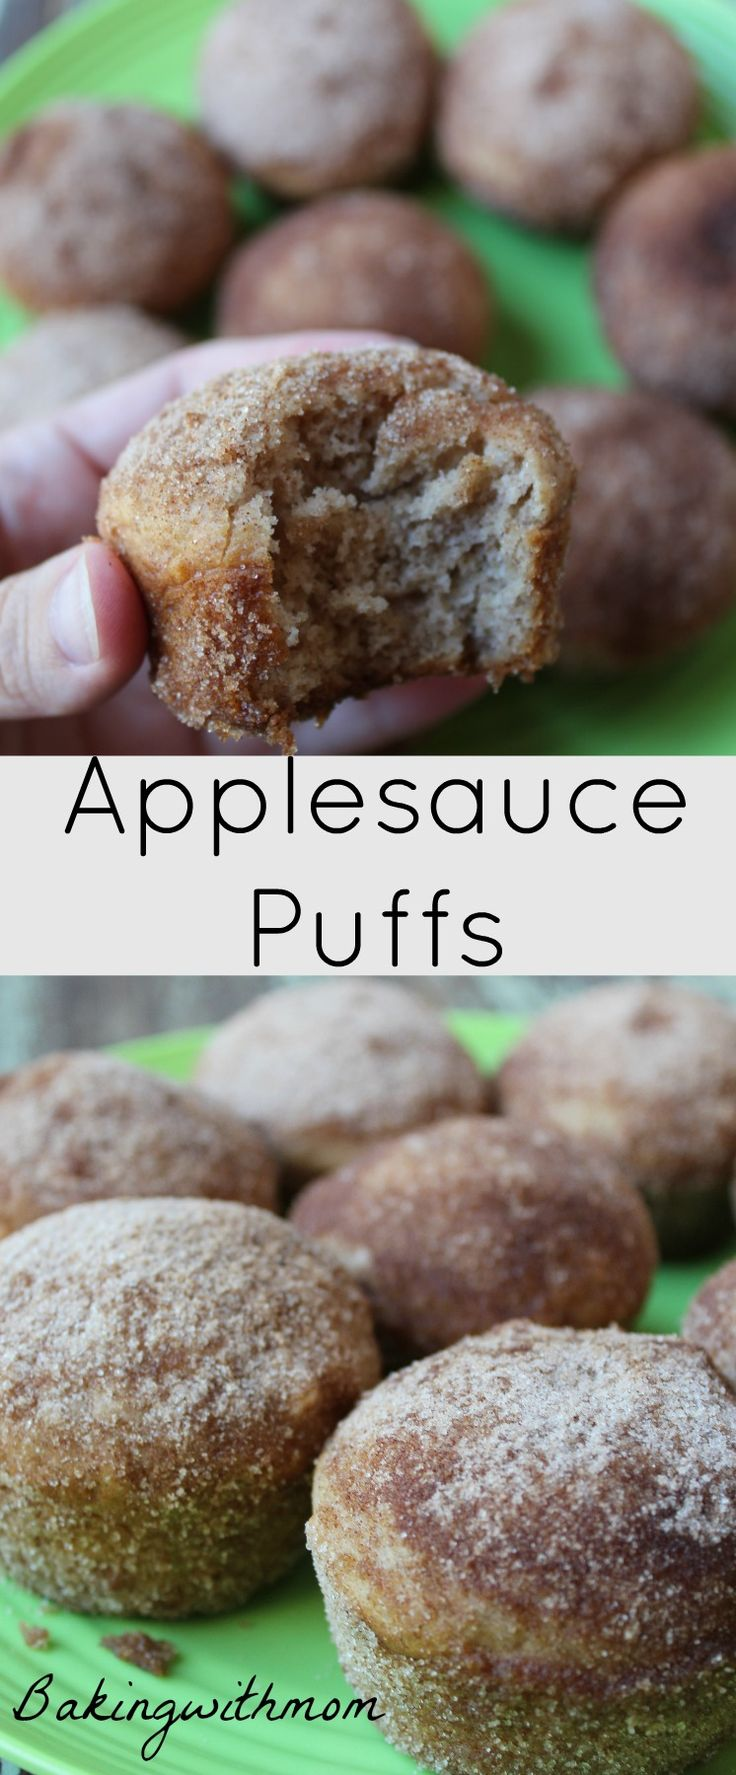 Applesauce puffs are great for breakfast, brunch or a snack. Easy prep and rolled in cinnamon sugar